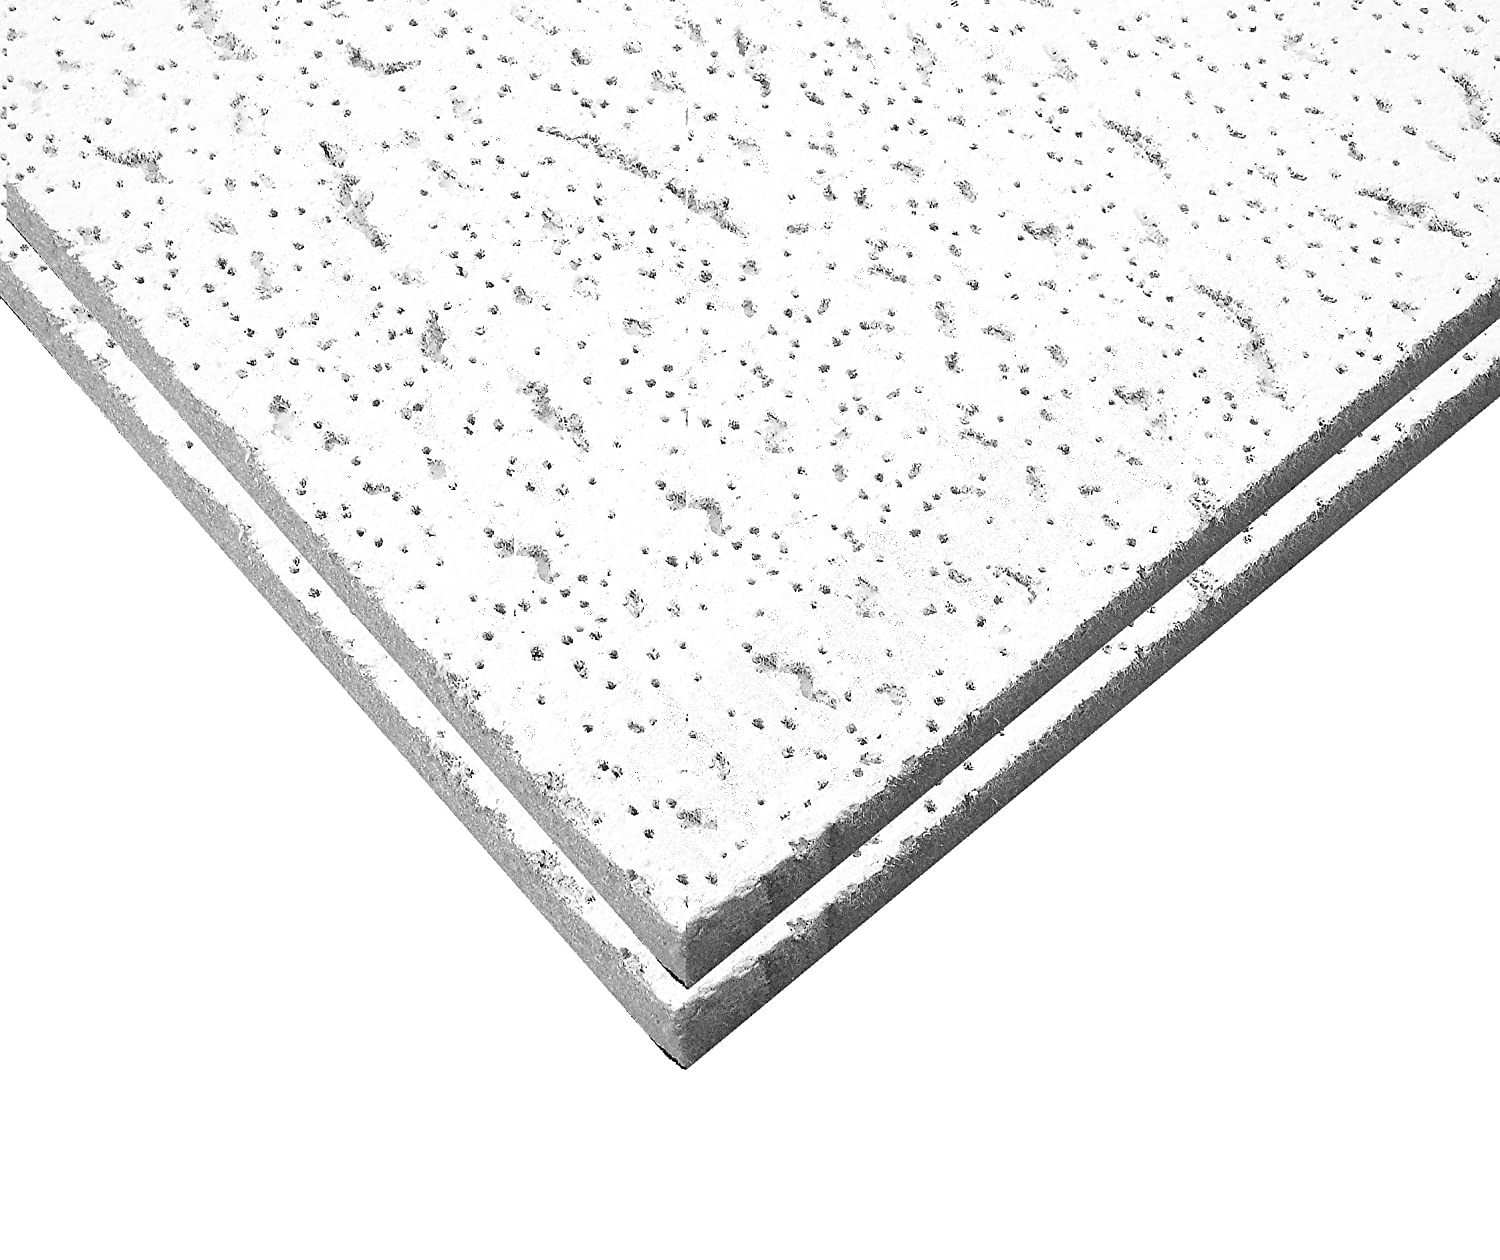 ARMSTRONG TATRA TEGULAR CEILING TILES BOARD 600 x 600mm TEGULAR EDGE 24MM GRID